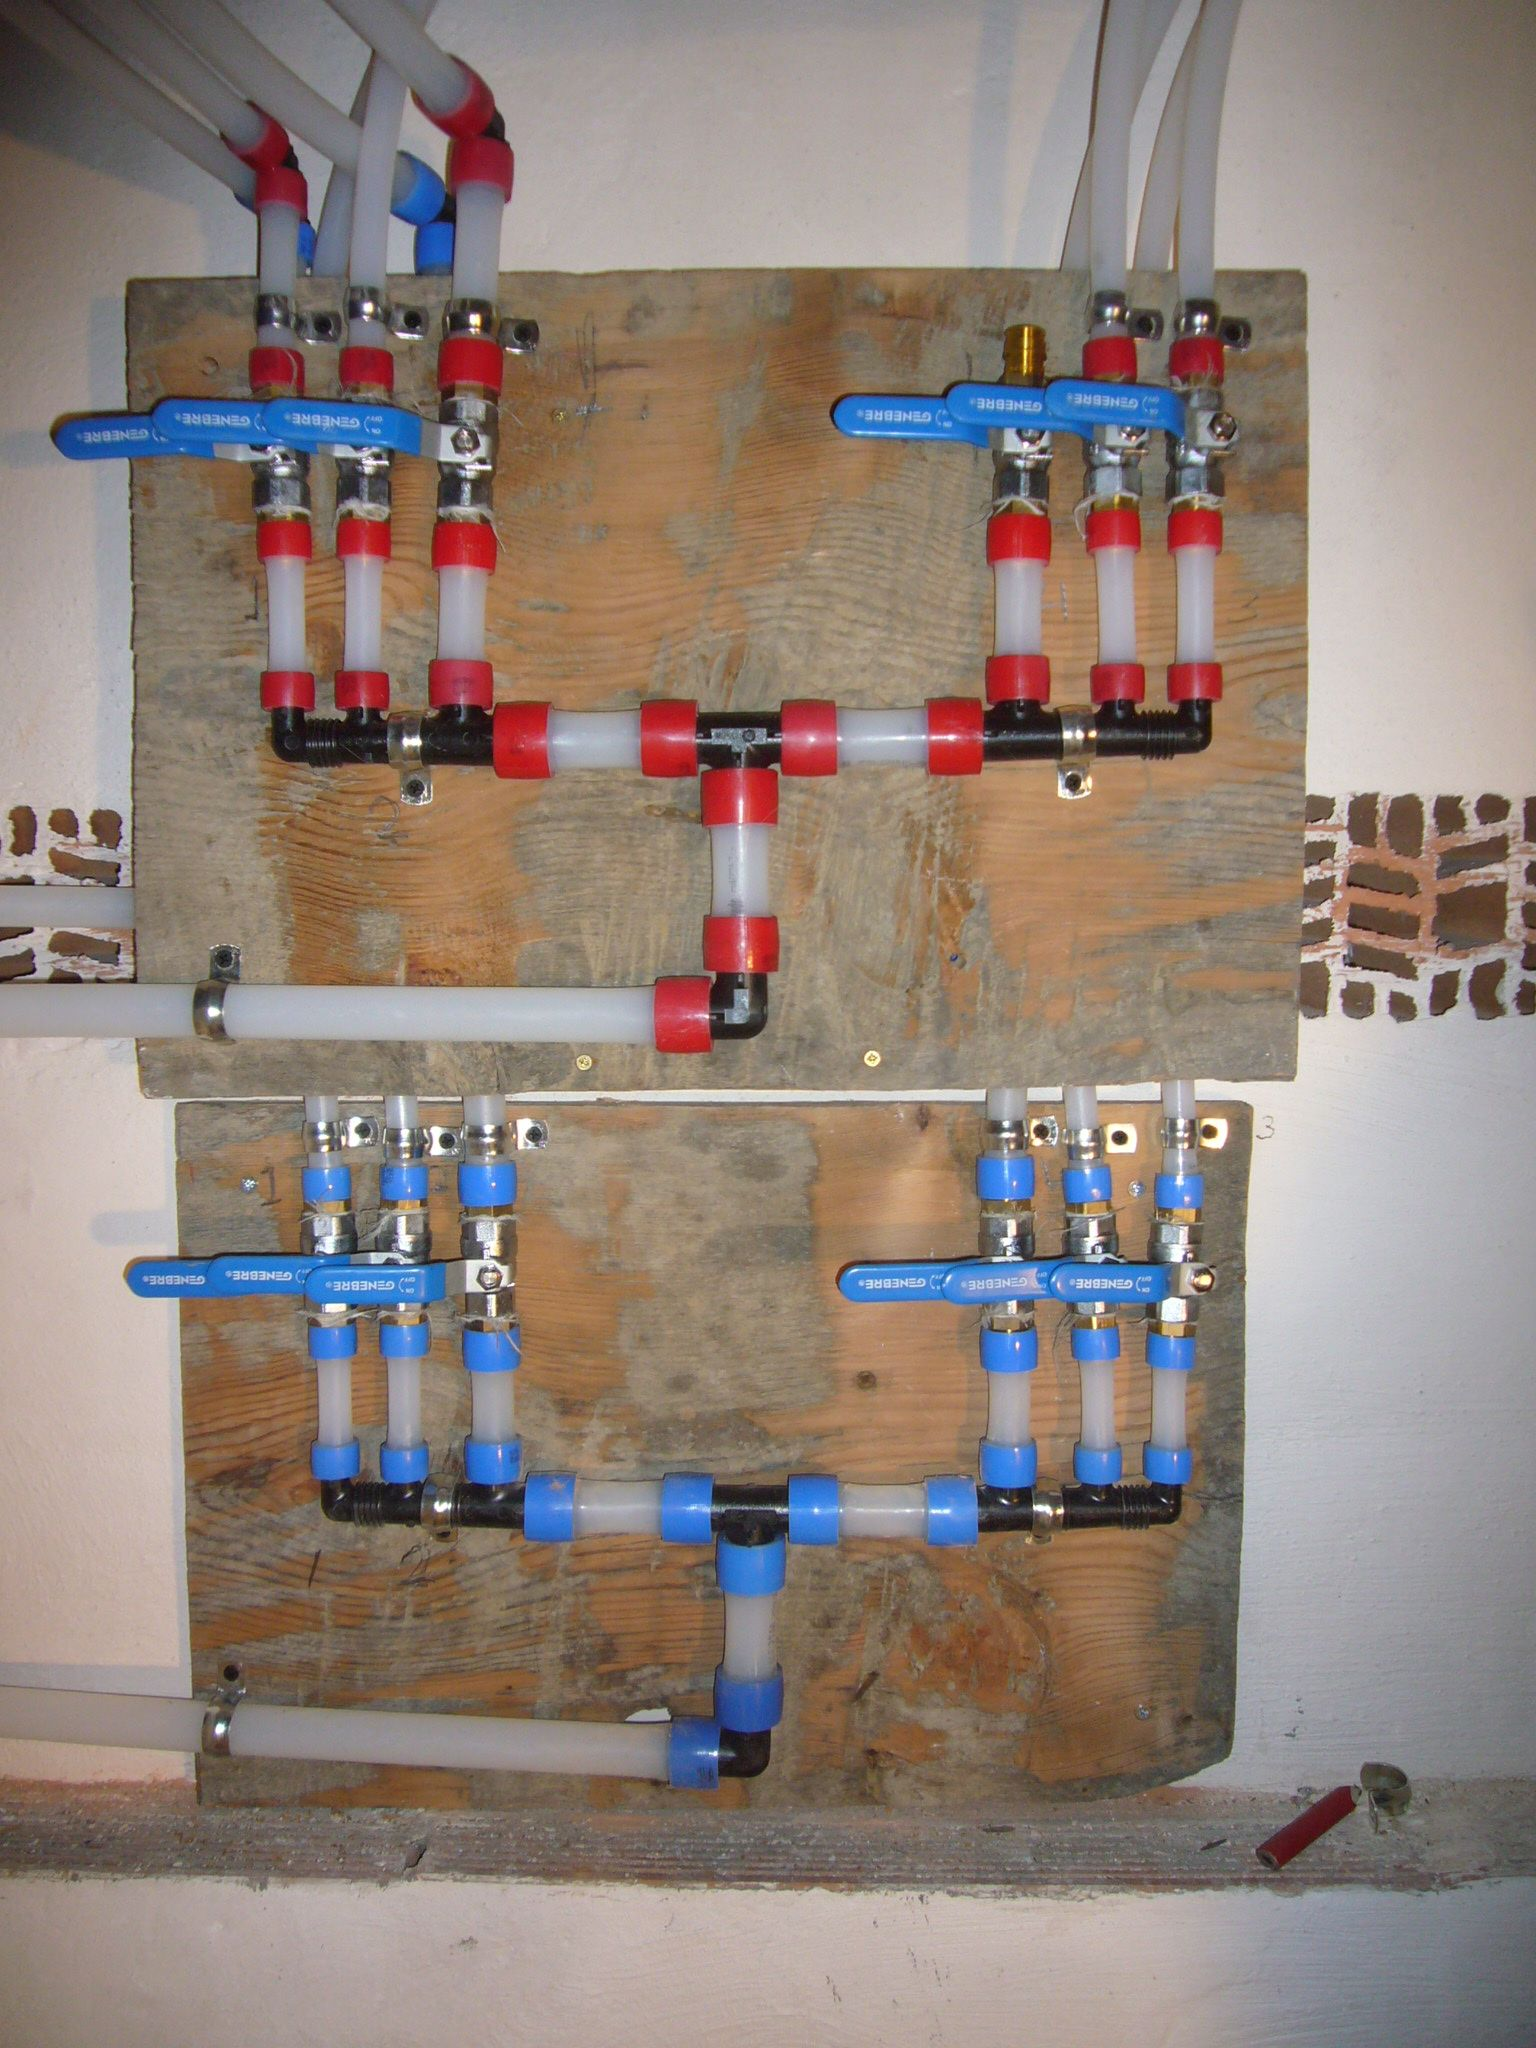 [SCHEMATICS_4ER]  Using the Uponor-Wirsbo system to bring water to five bath rooms, one  kitchen and the exterior. #renovation #verbouwin… | Pex plumbing, Diy  plumbing, Water plumbing | Uponor Piping Diagram |  | Pinterest